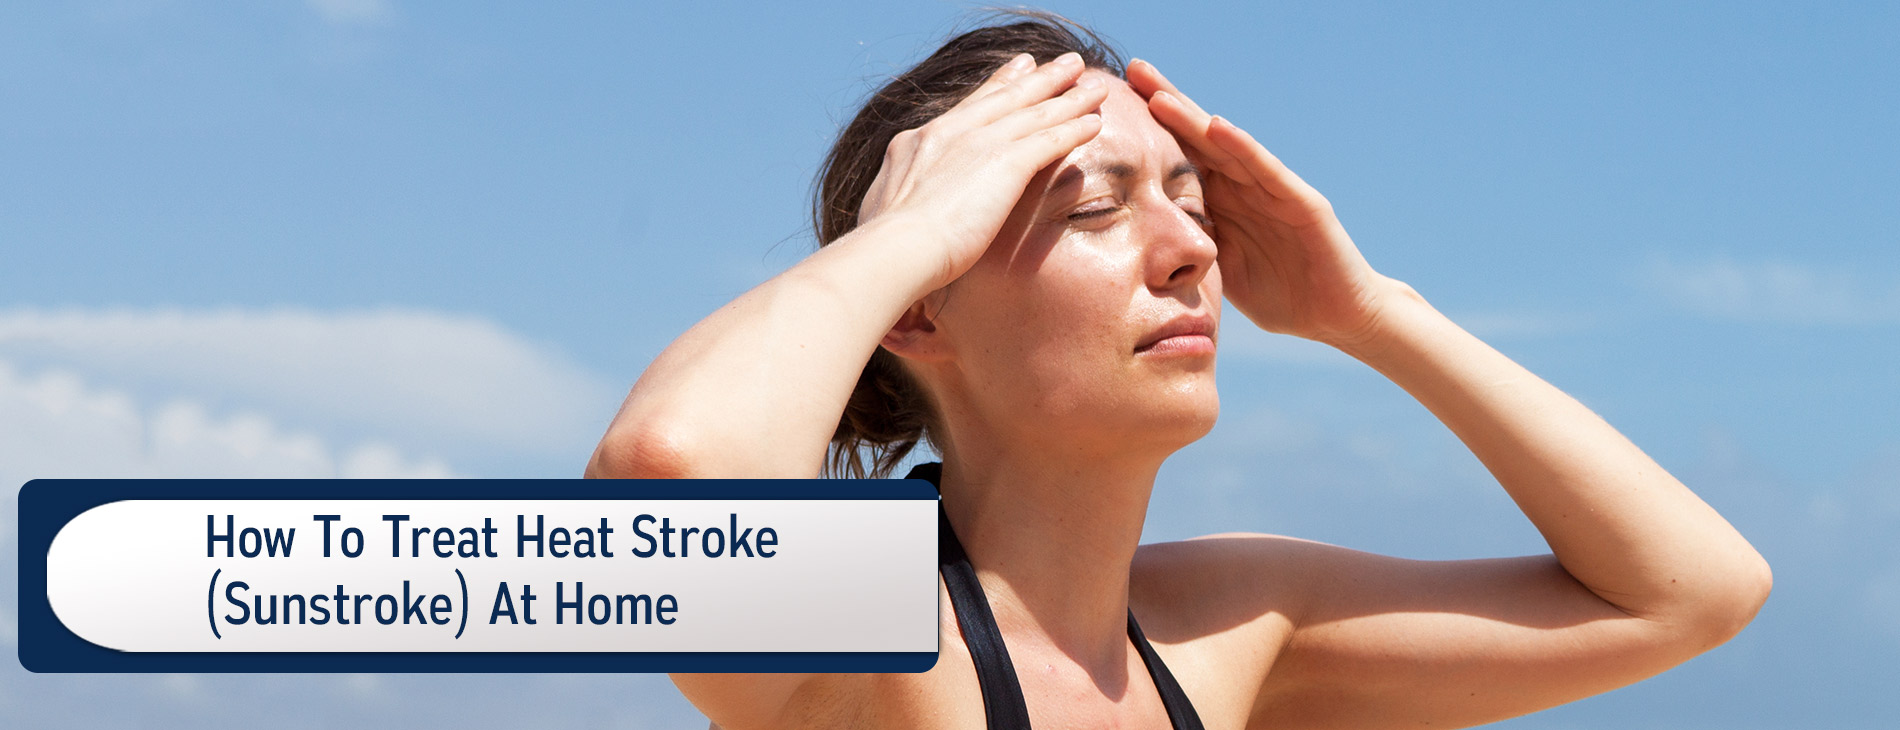 How-To-Treat-Heat-Stroke-(Sunstroke)-At-Home